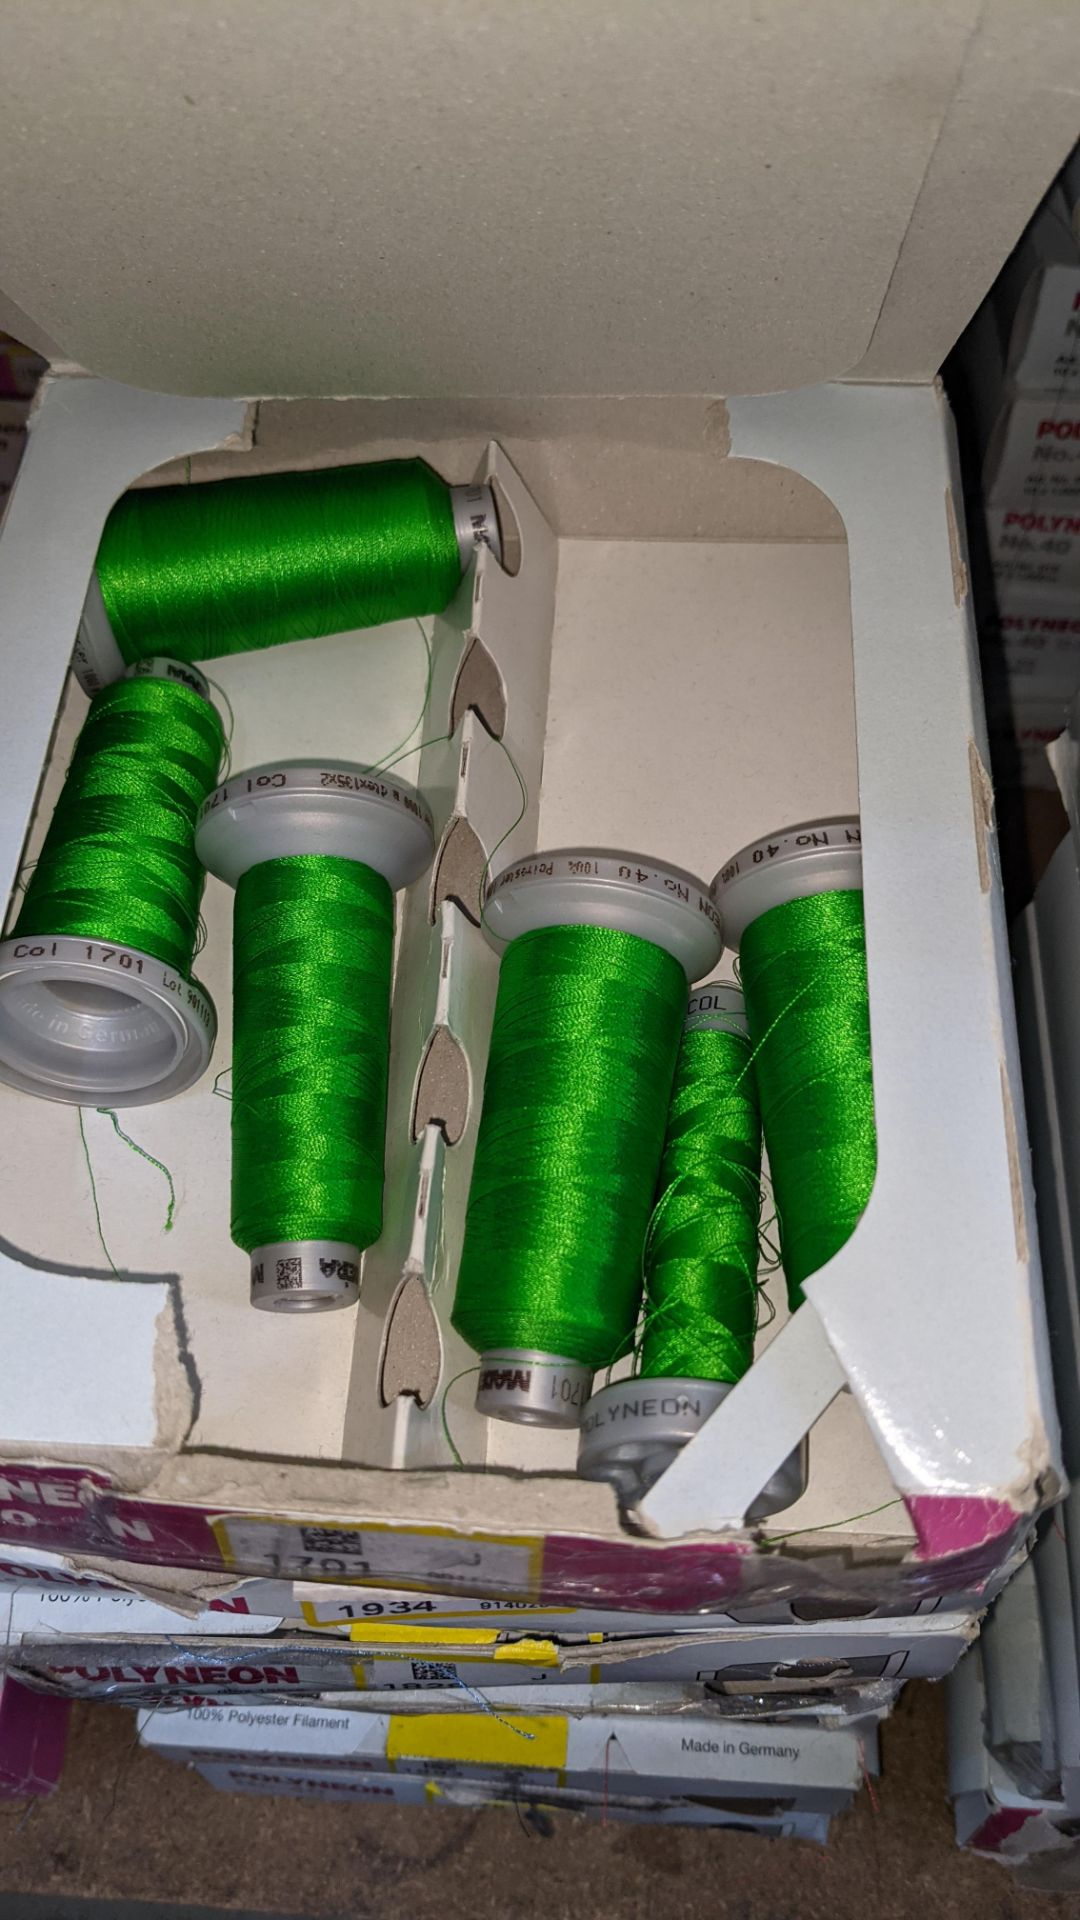 14 boxes of Madeira No. 40 Polyneon embroidery thread - Image 6 of 7